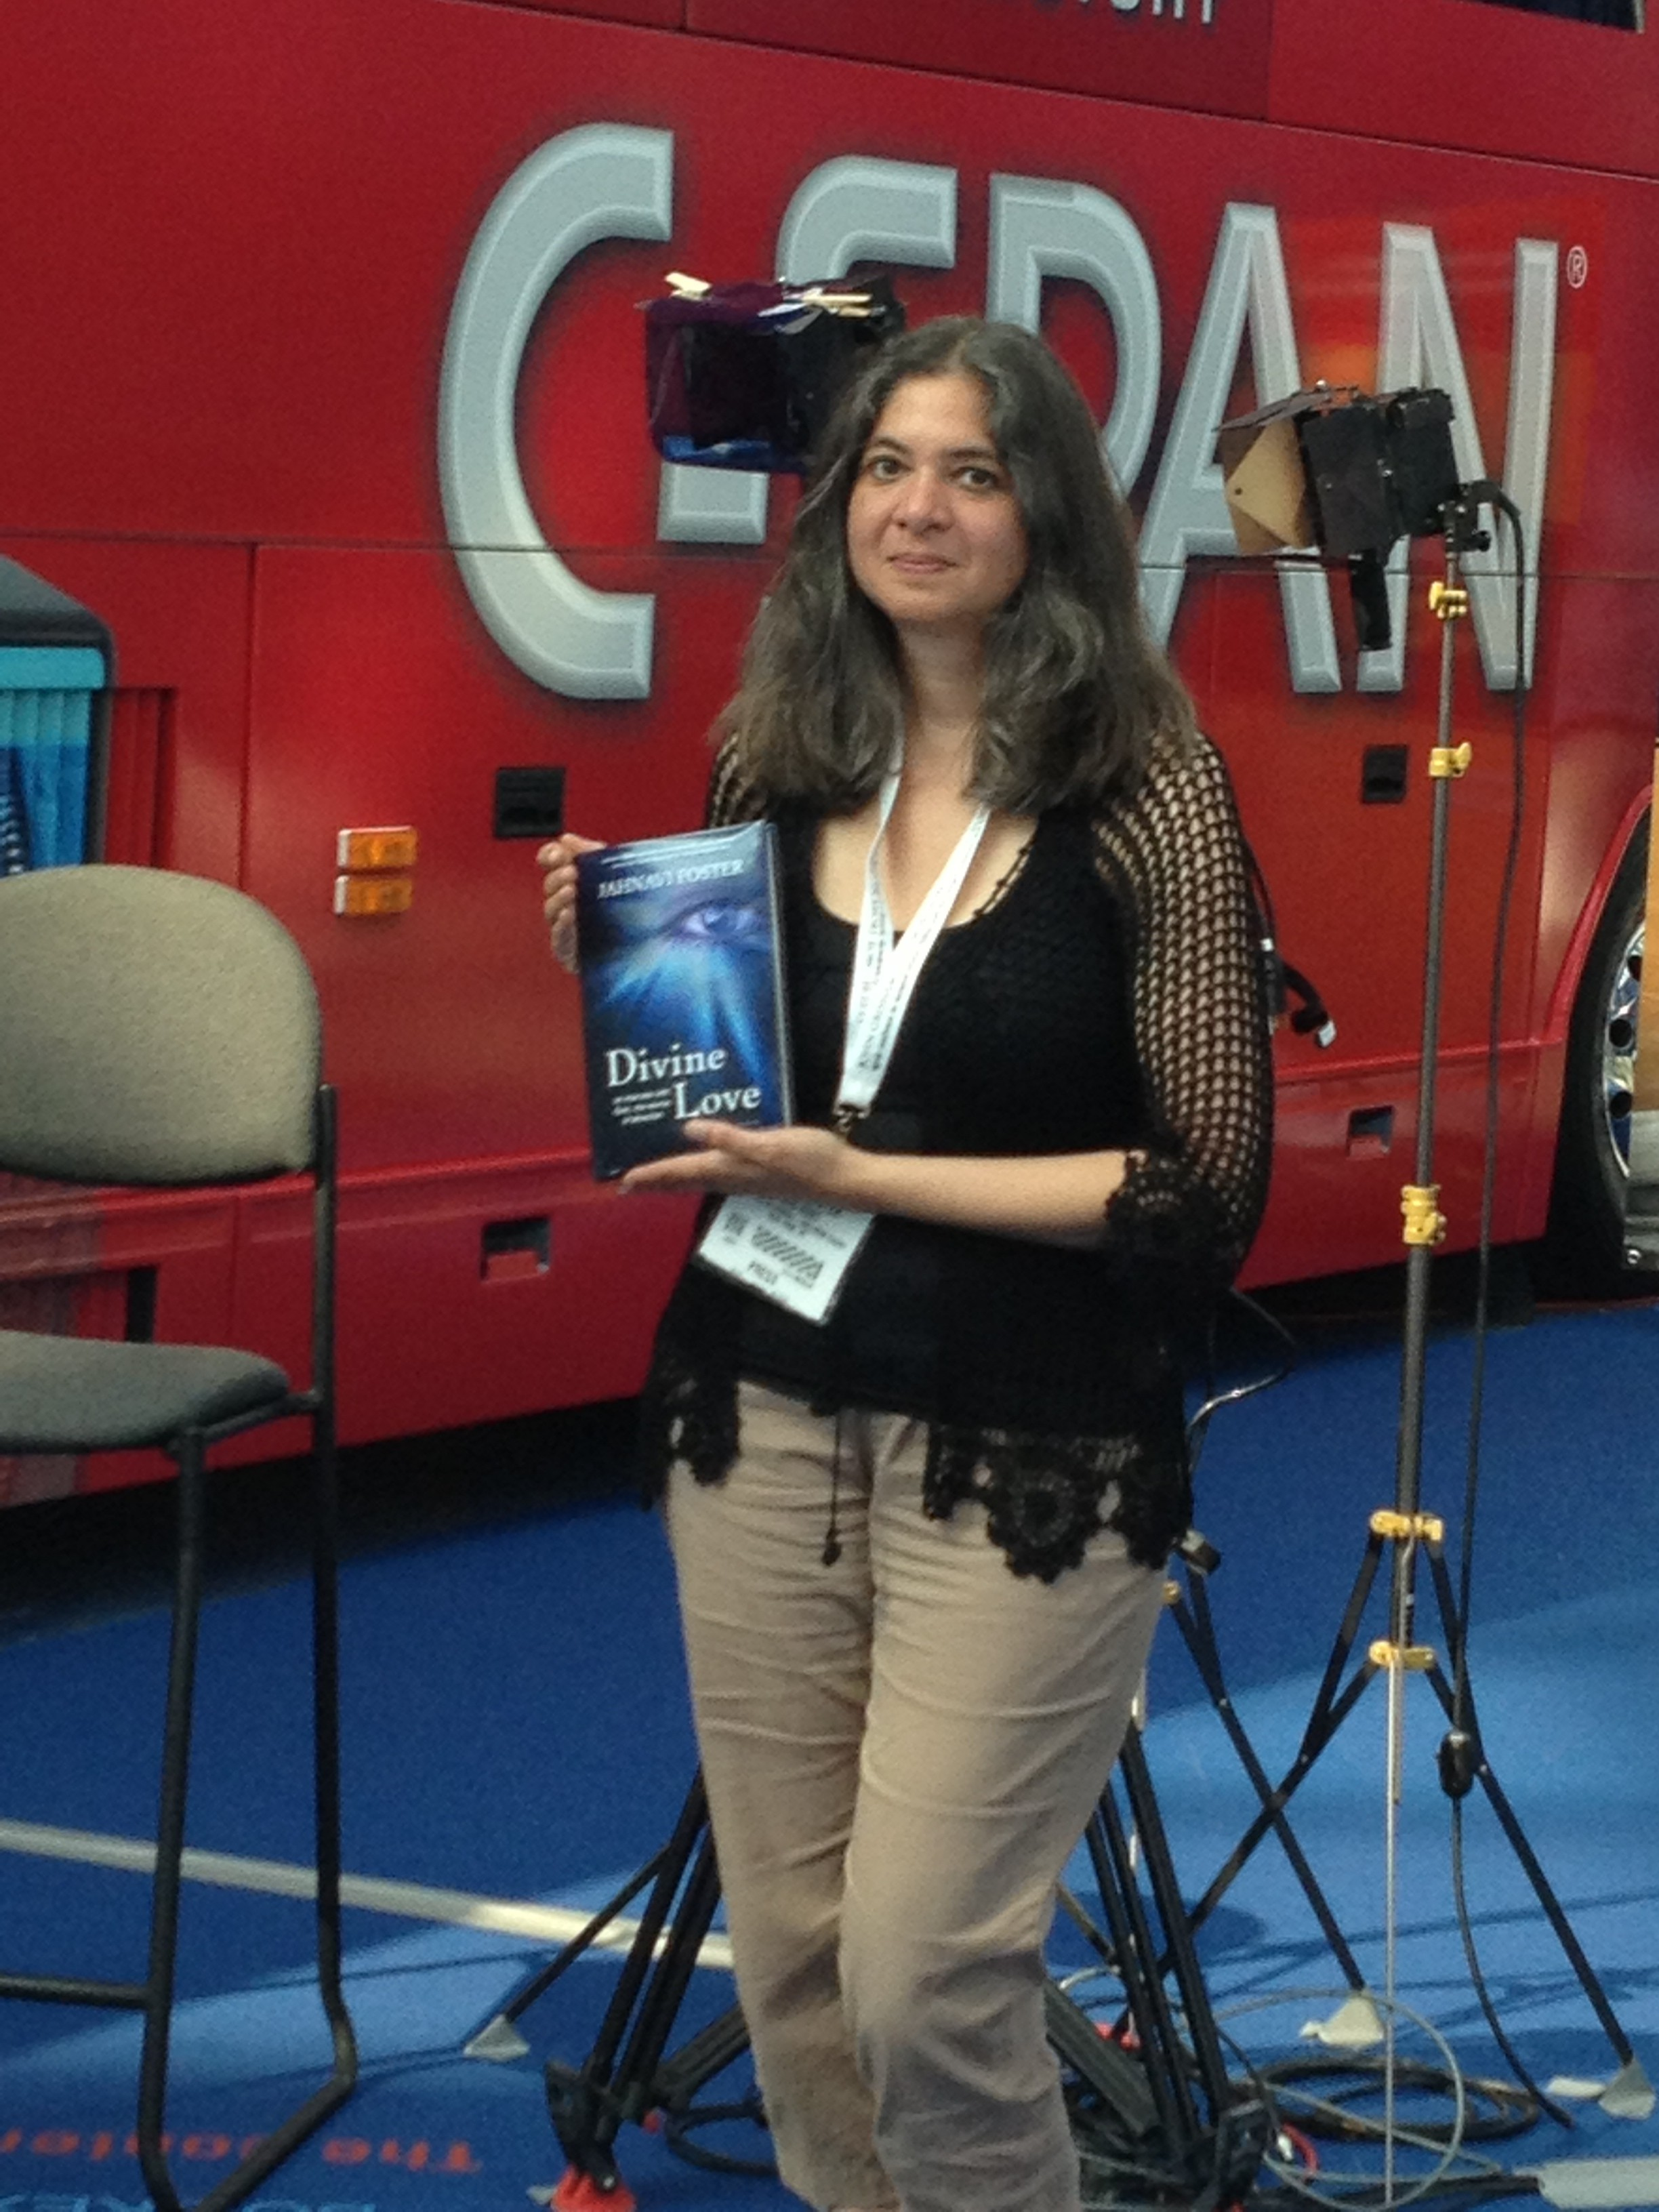 MS Founder coordinated the CSPAN BookTV PhotoOp at BEA 2013